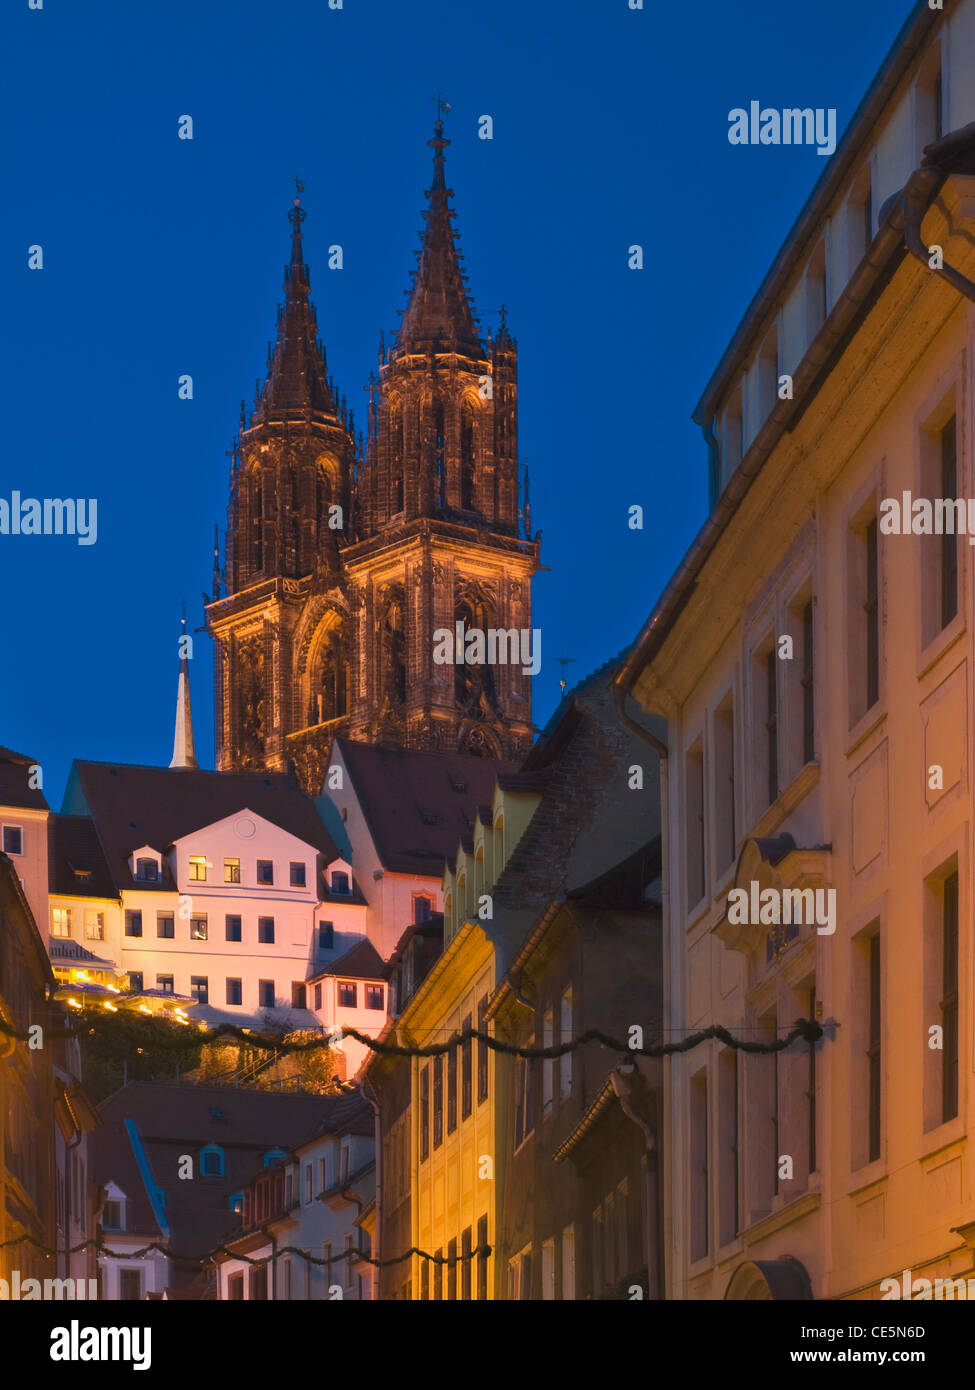 view from Burgstrasse-street to Meissen Cathedral, Meissen, Saxony, Germany, Europe - Stock Image